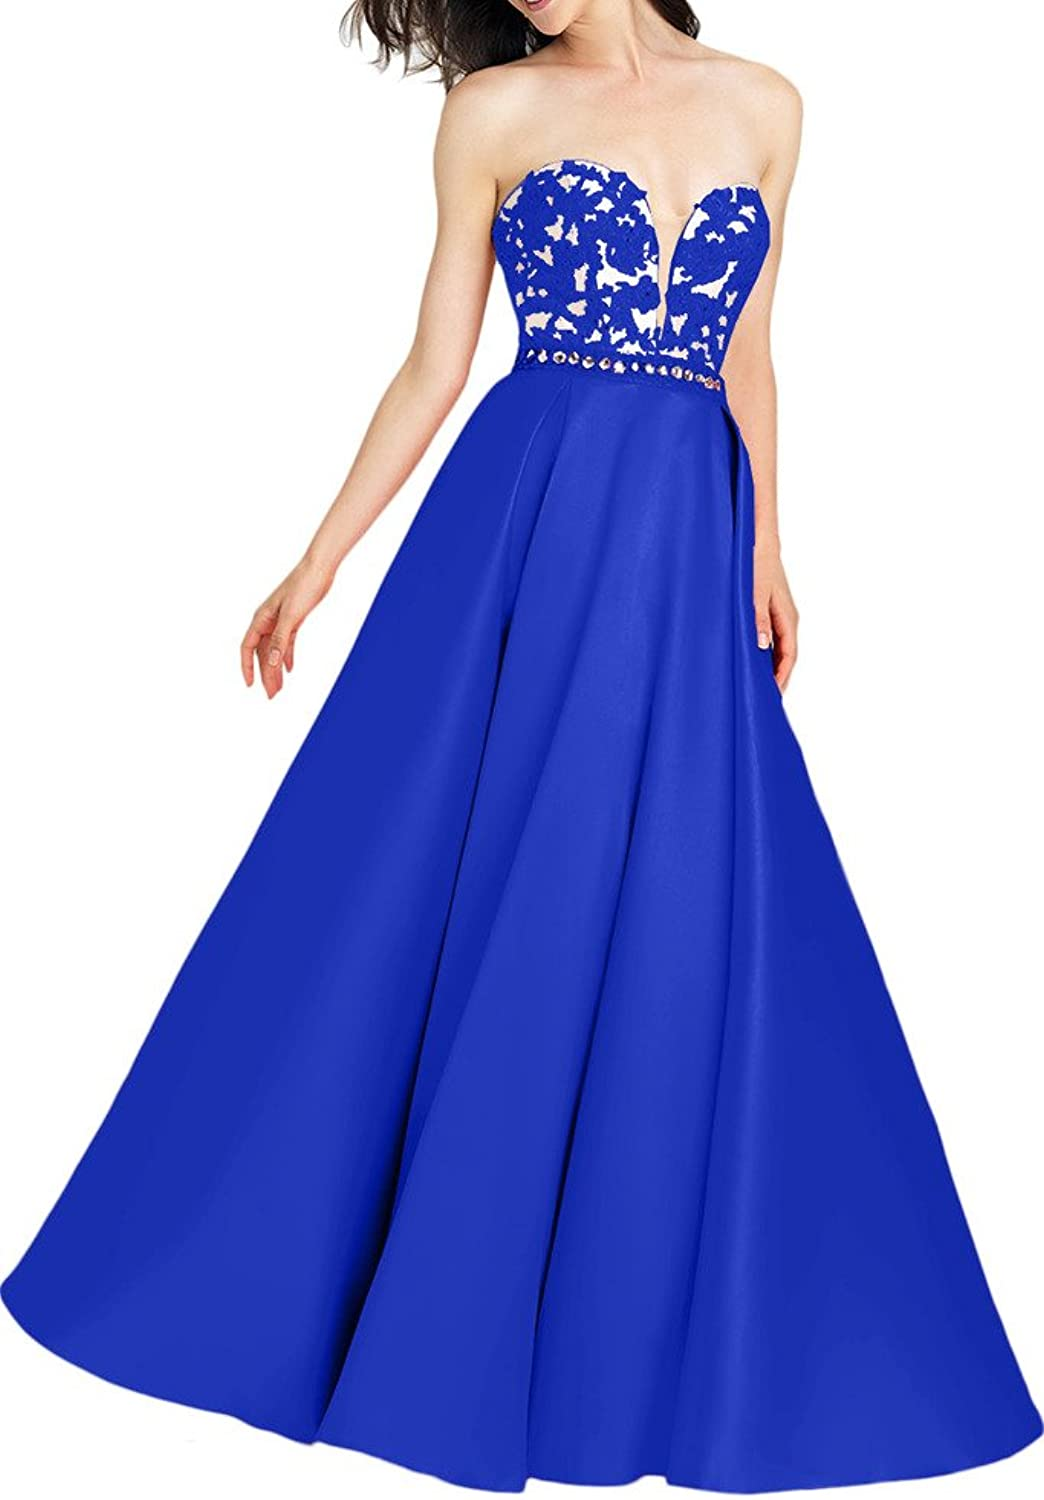 MILANO BRIDE Stunning Ball Gown Strapless Applique Pleated Prom Pageant Dress